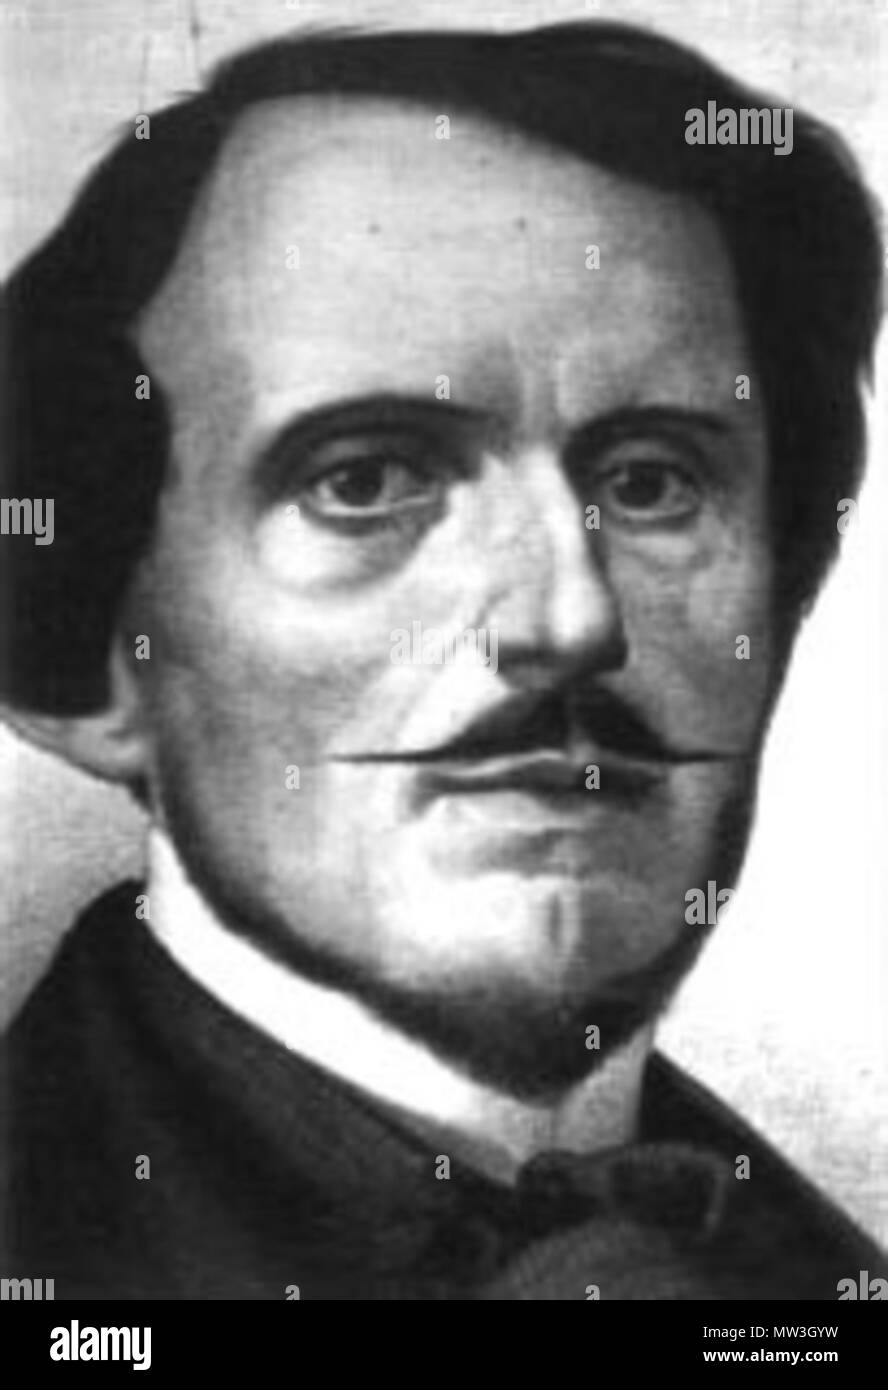 . Italiano: Immagine dello statista è:Bettino Ricasoli (1809-1880). 8 maggio 2004 (originale data di caricamento). Uploader originale era due volte25 a it.wikipedia 83 Bettino Ricasoli Immagini Stock